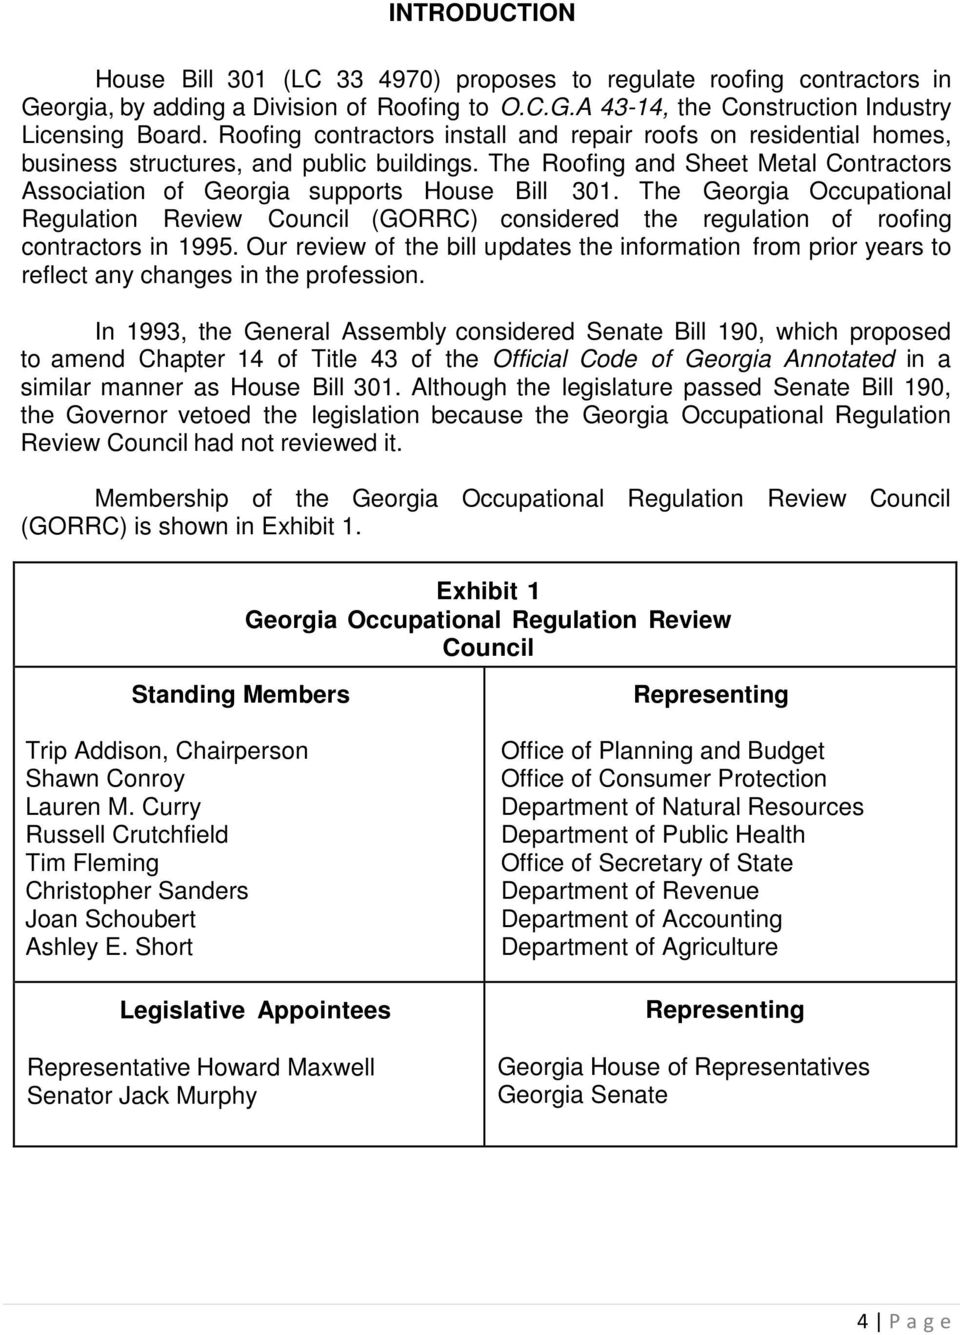 The Georgia Occupational Regulation Review Council (GORRC) considered the regulation of roofing contractors in 1995.